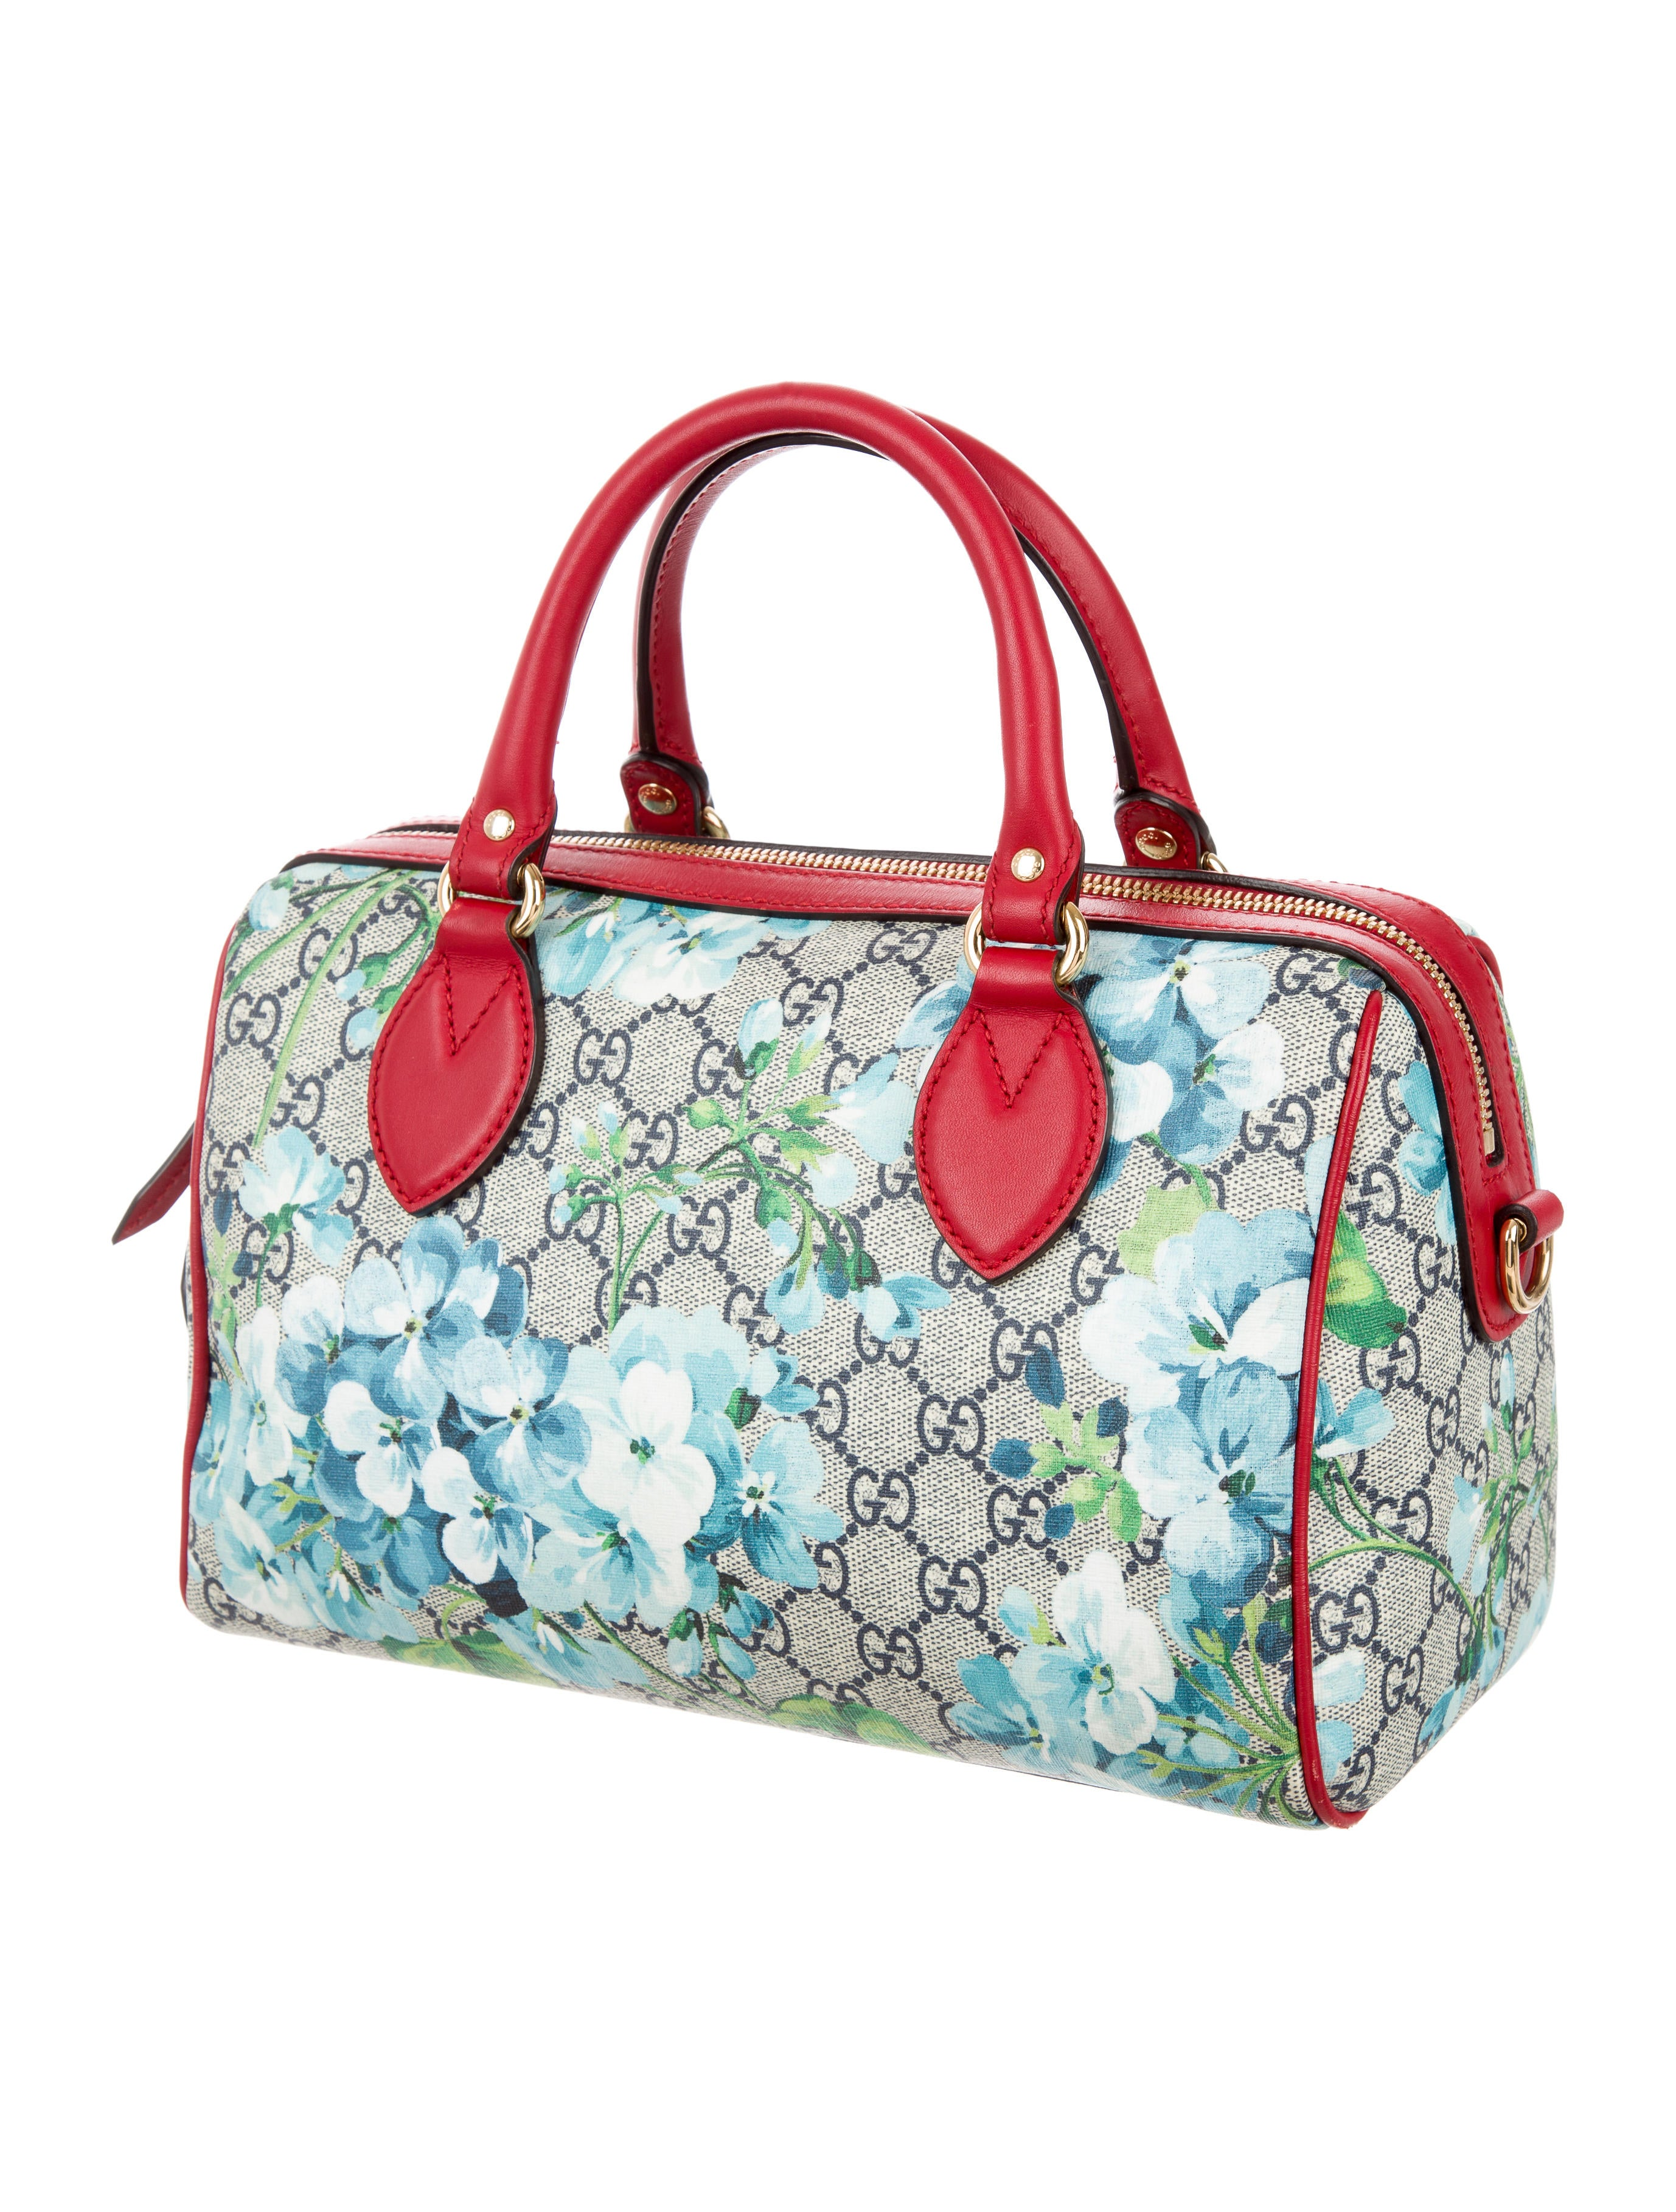 33fa24678bba8a Gucci Gg Blooms Purse | Stanford Center for Opportunity Policy in ...